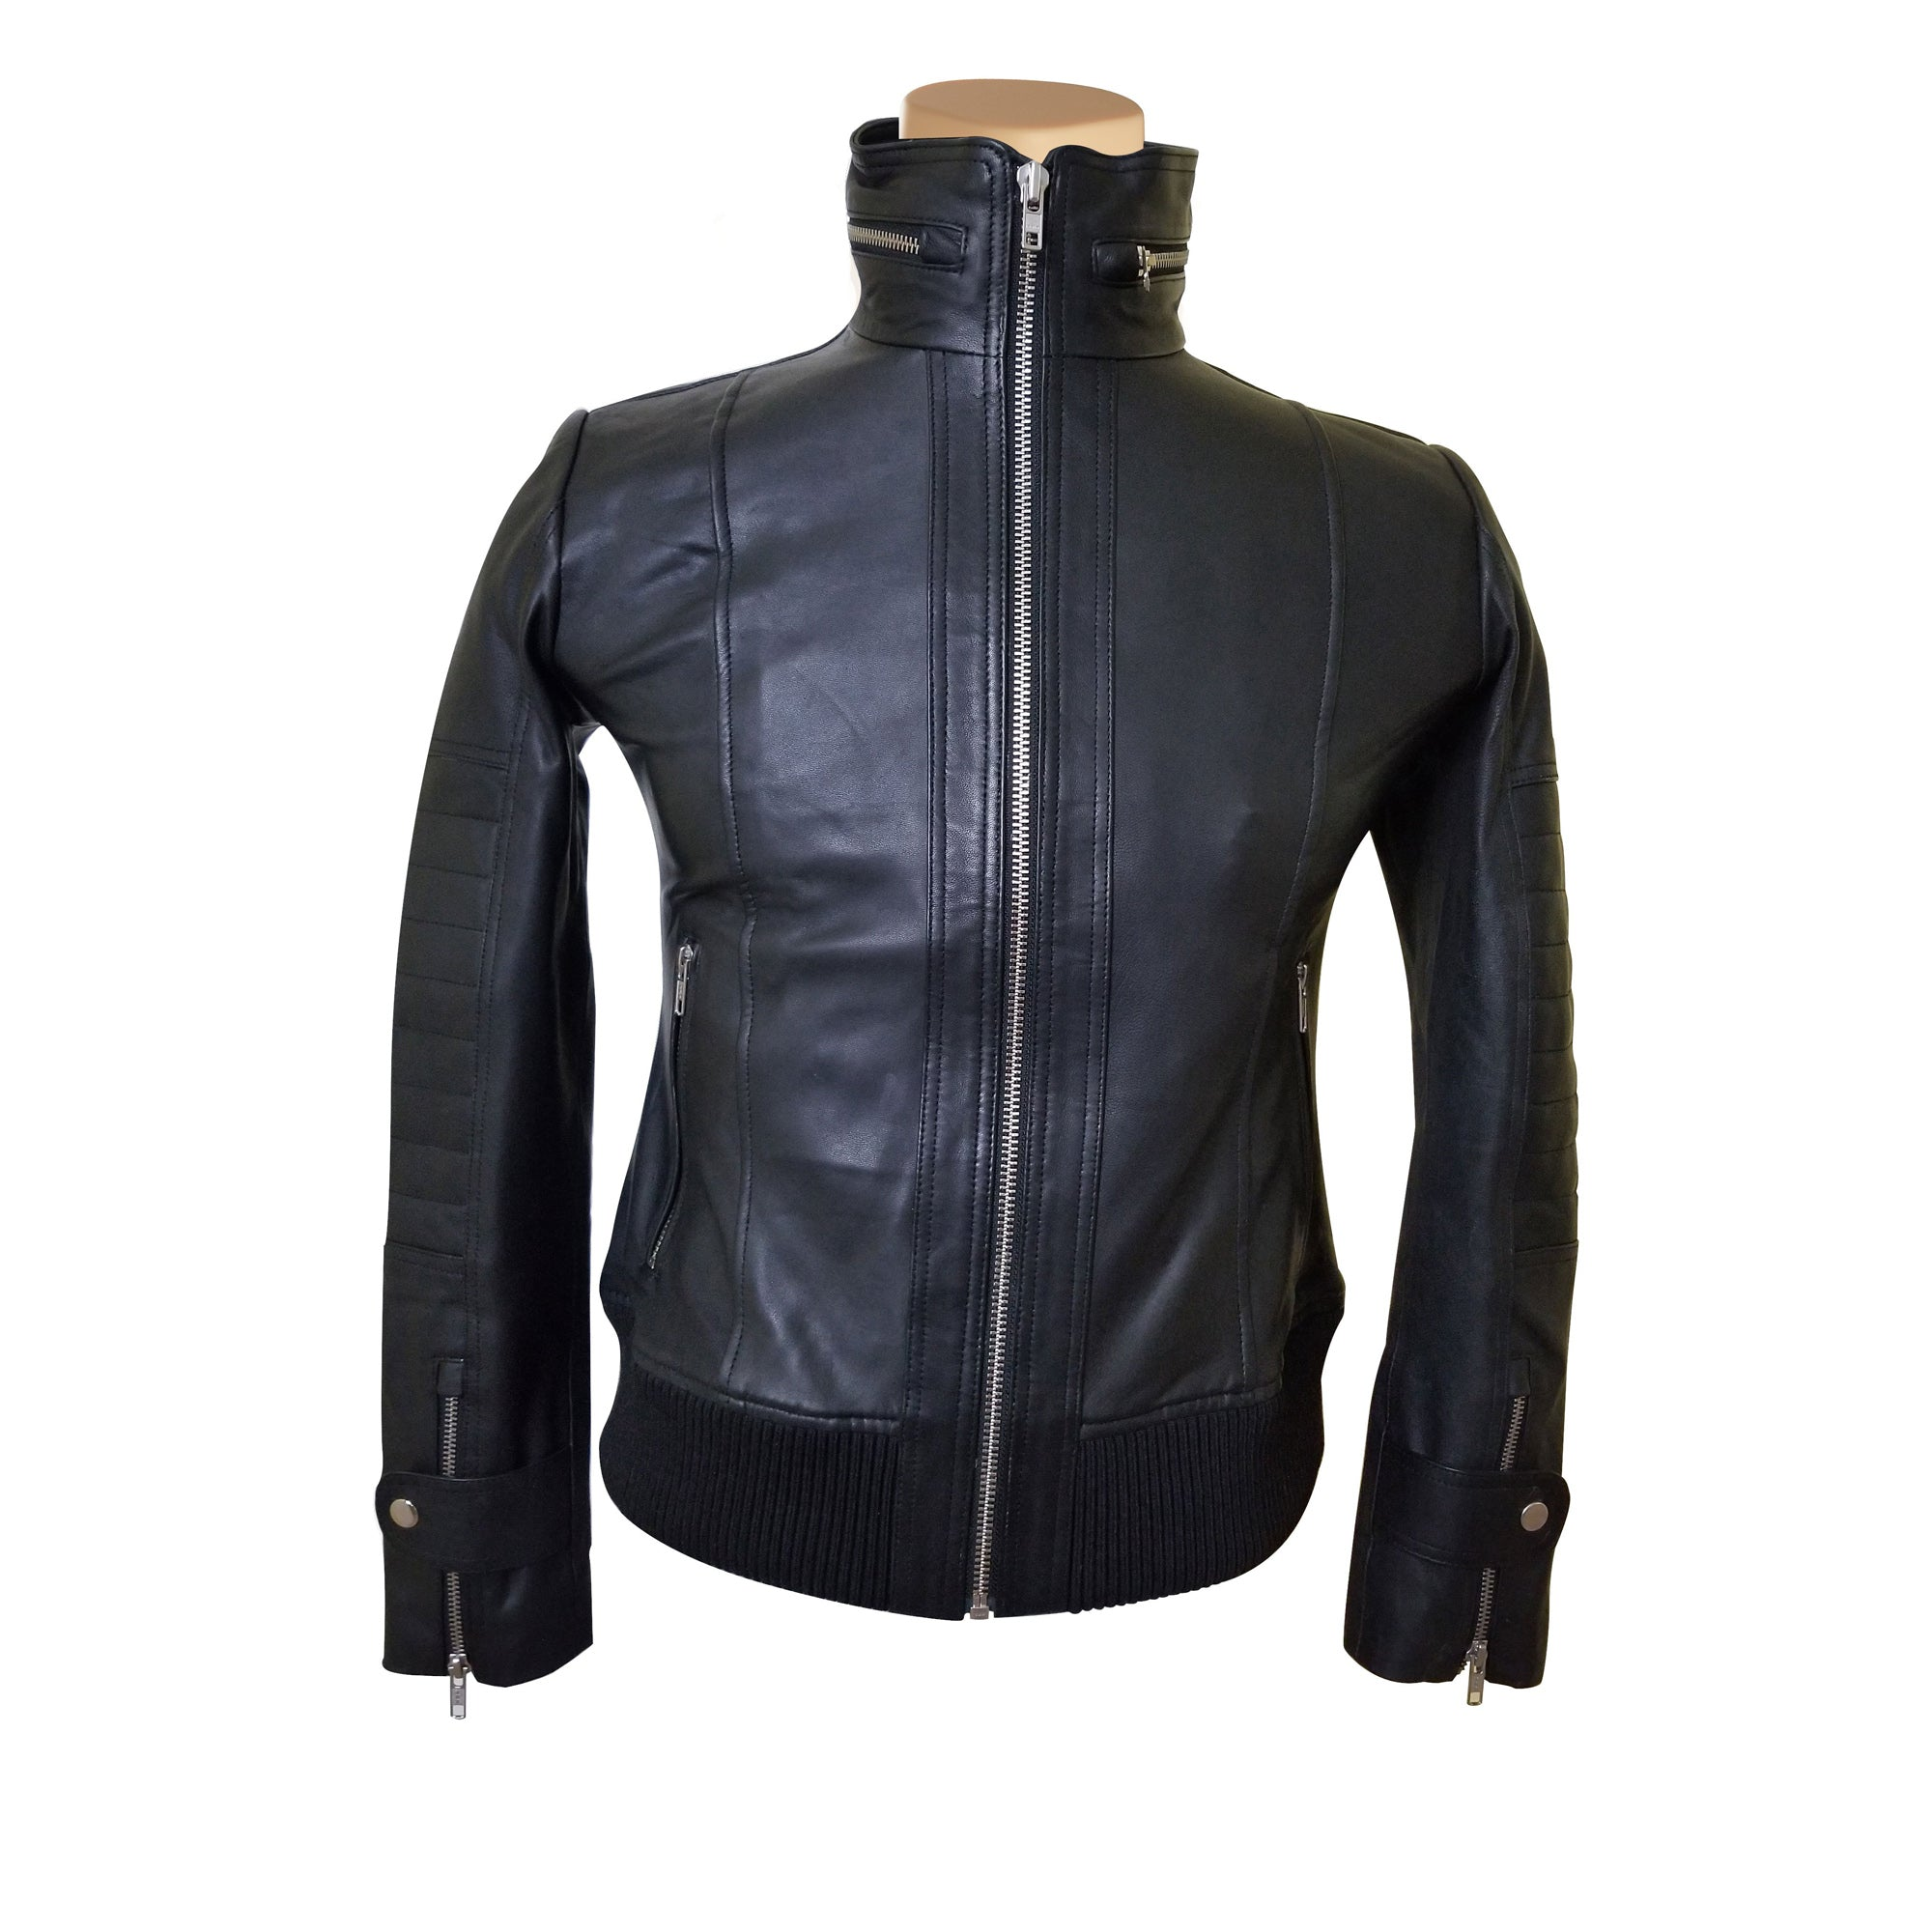 Olof's black leather jacket with straight collar